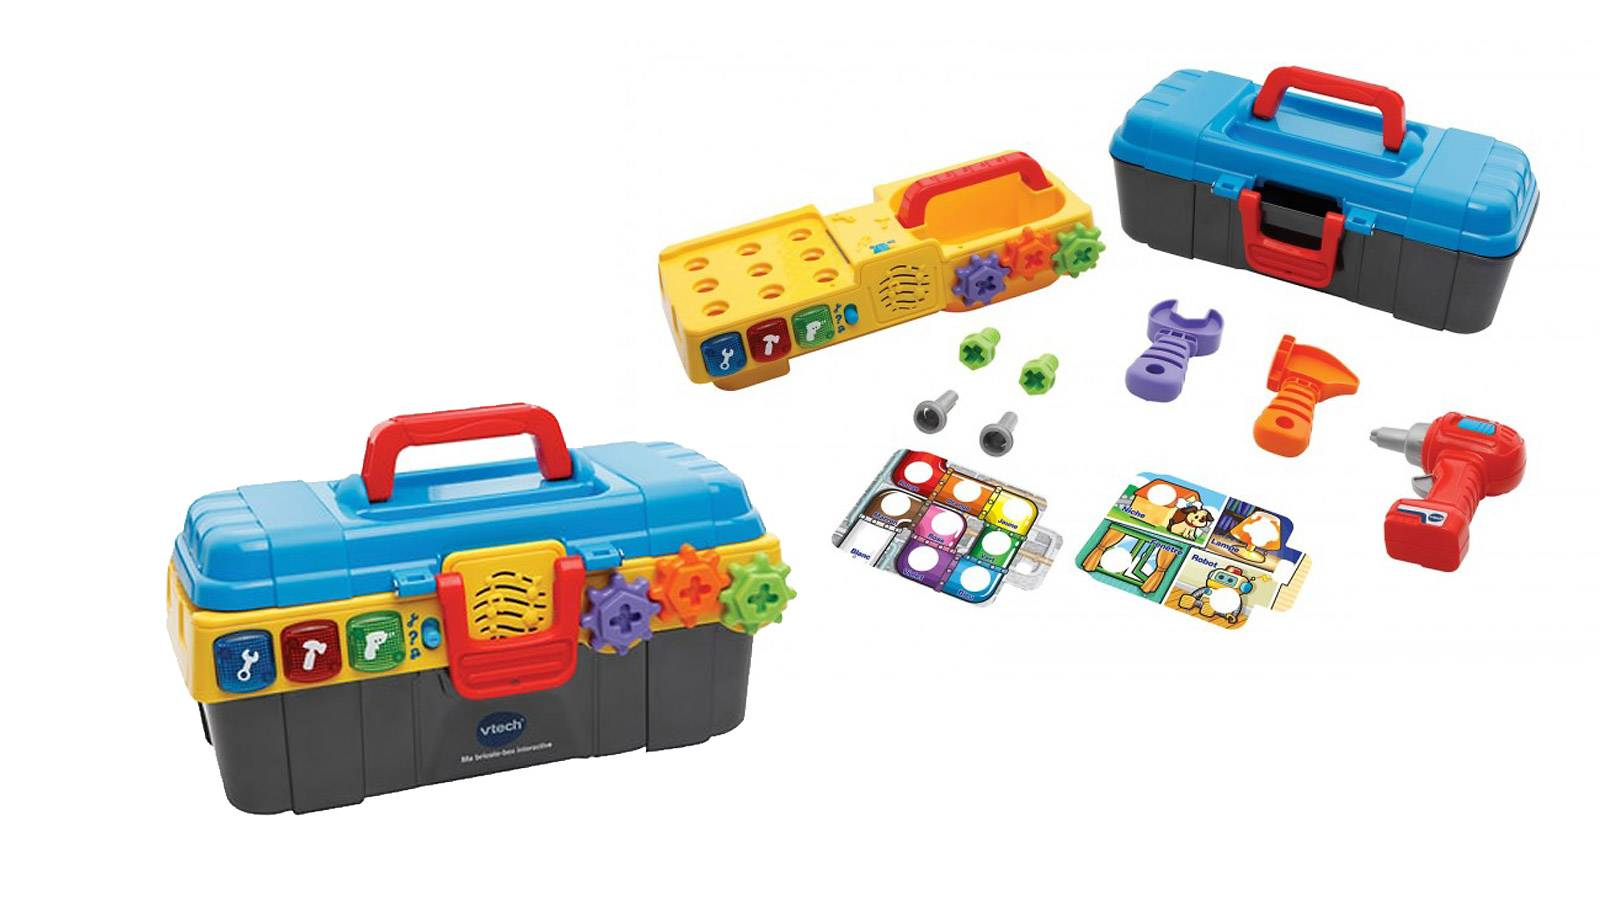 Tots-BUYER'S-GUIDE-9-best-role-playing-toys-for-toddlers-VTECH-TOOL-BOX